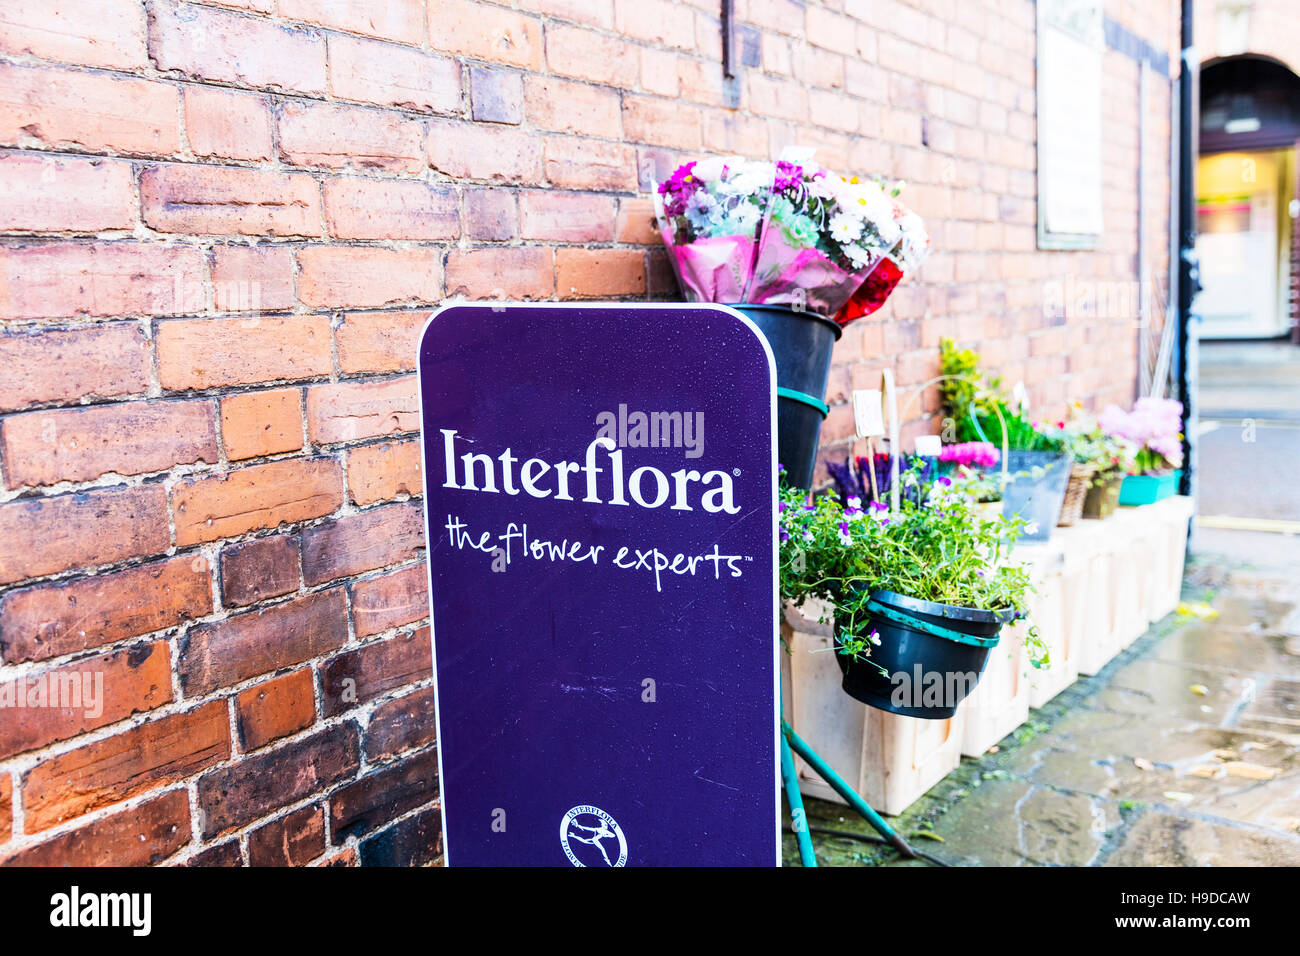 Interflora Photos Interflora Images Alamy